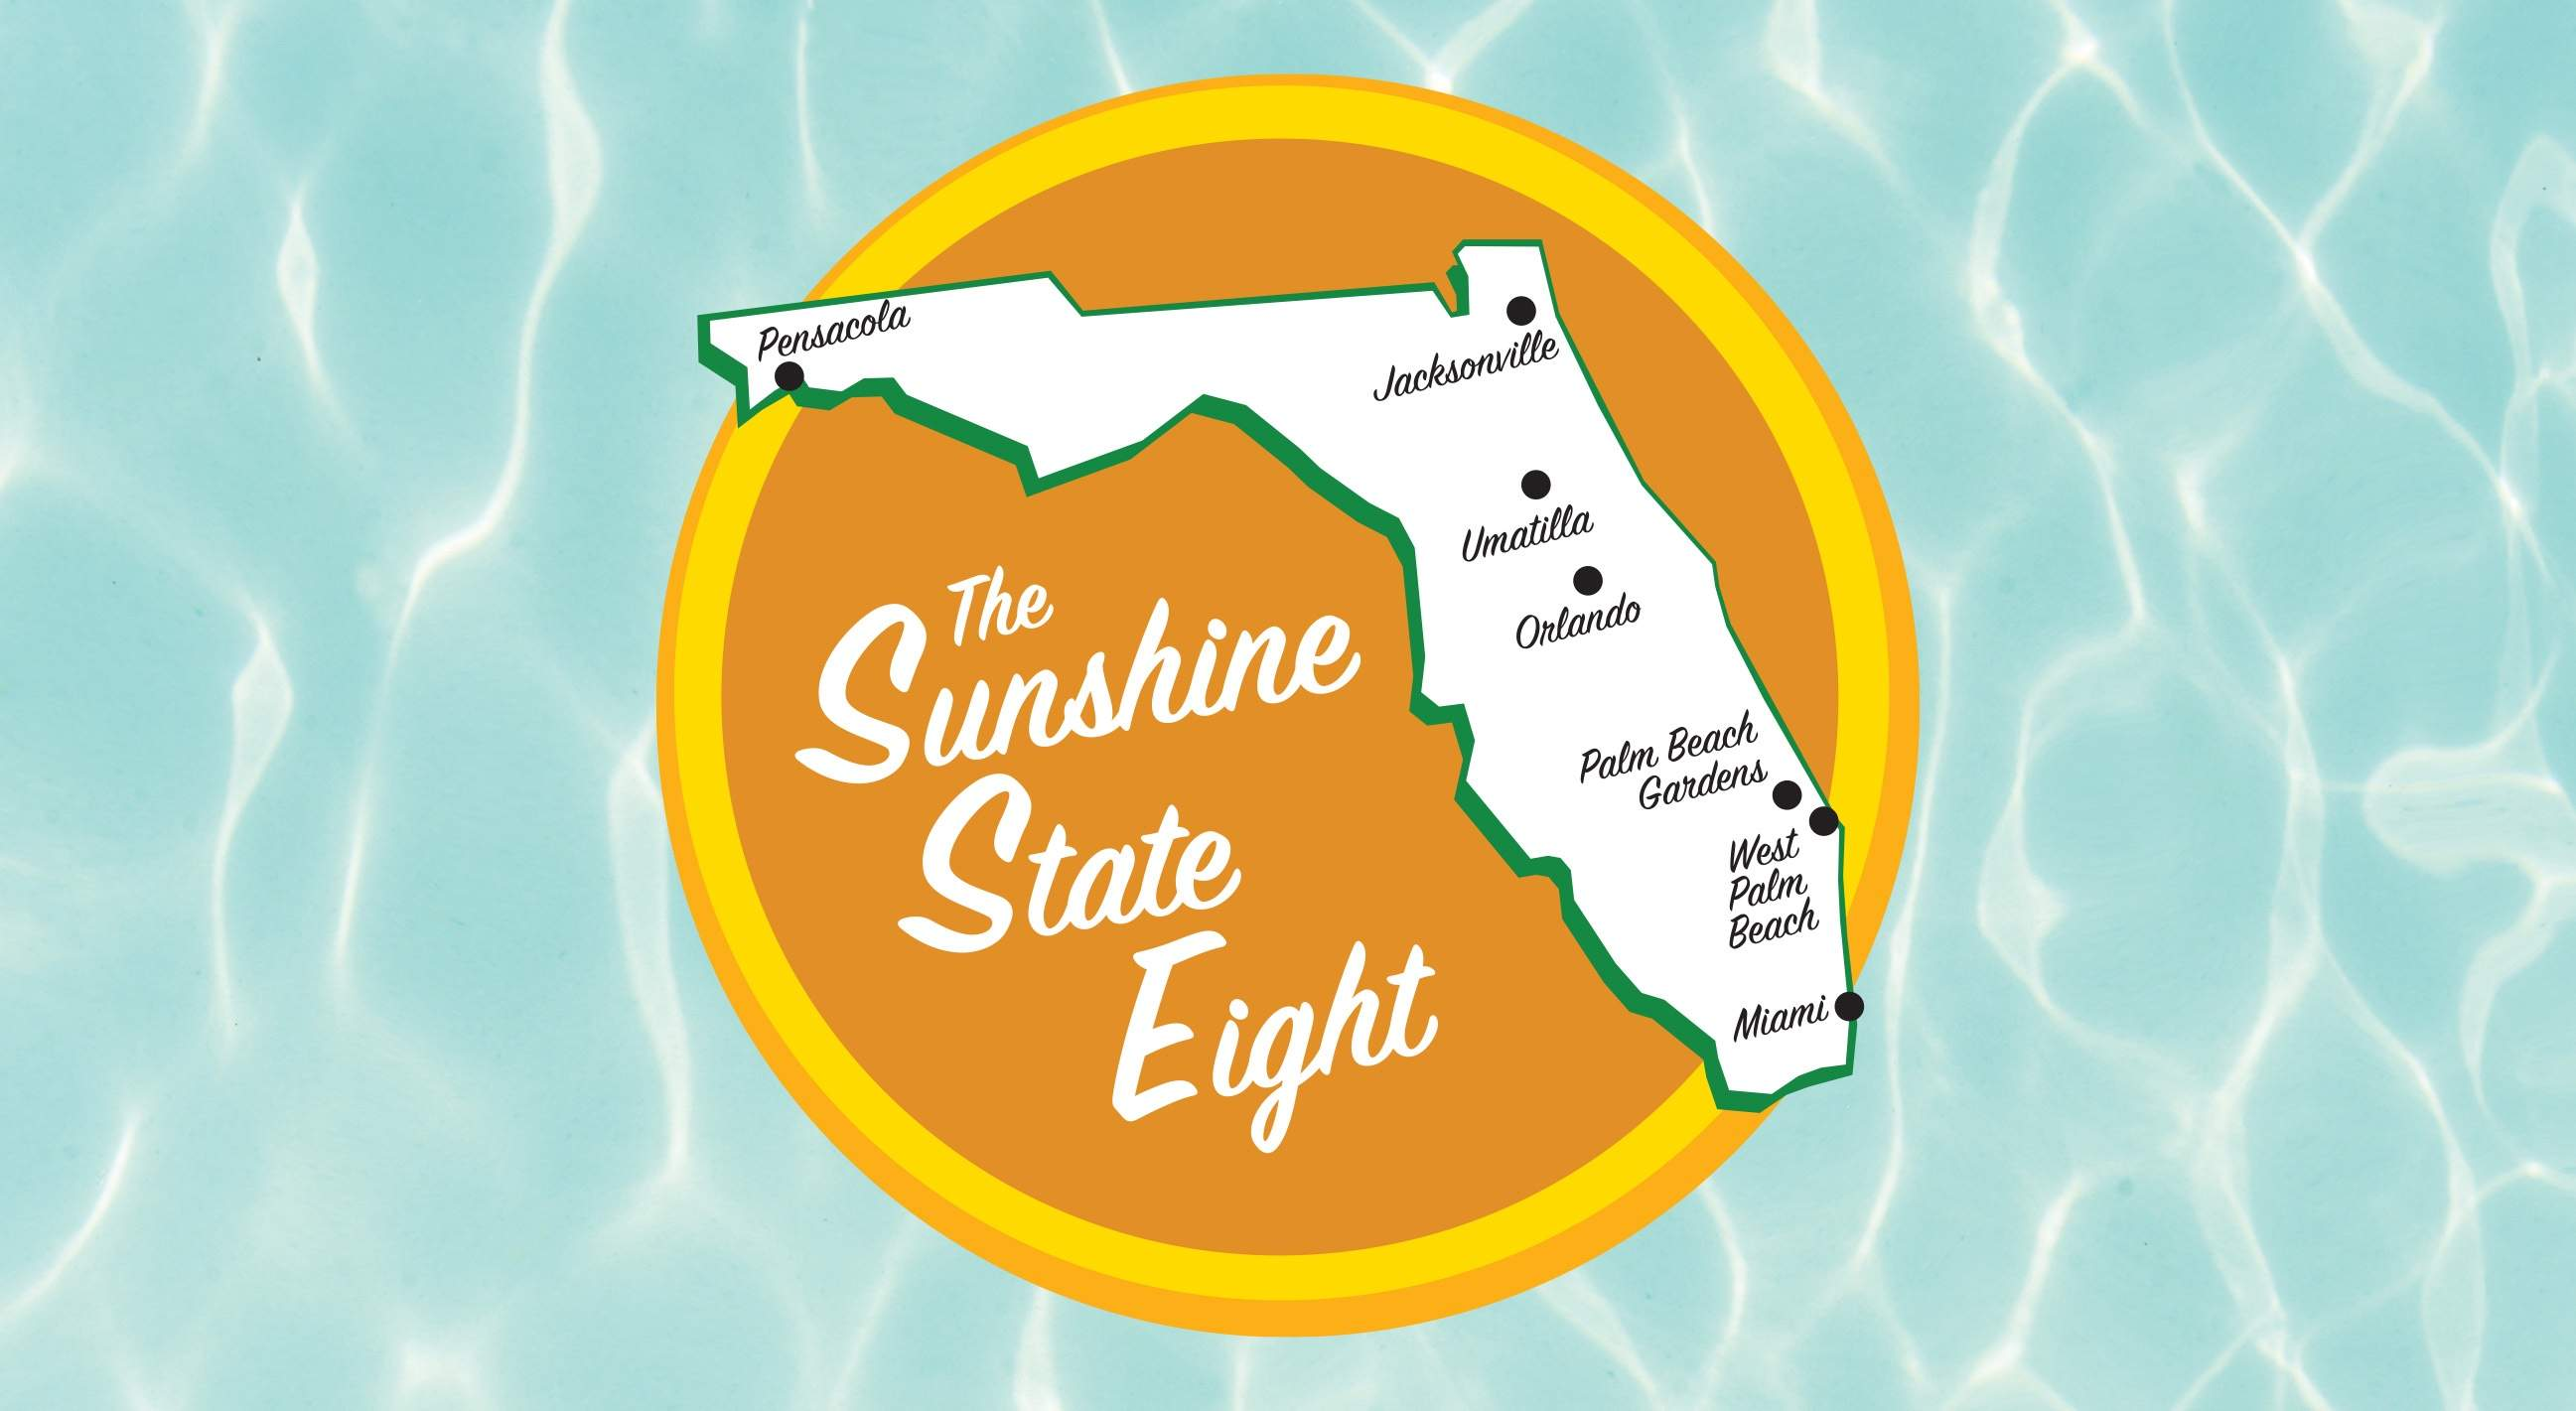 graphic of state of florida with 7 locations pinpointed